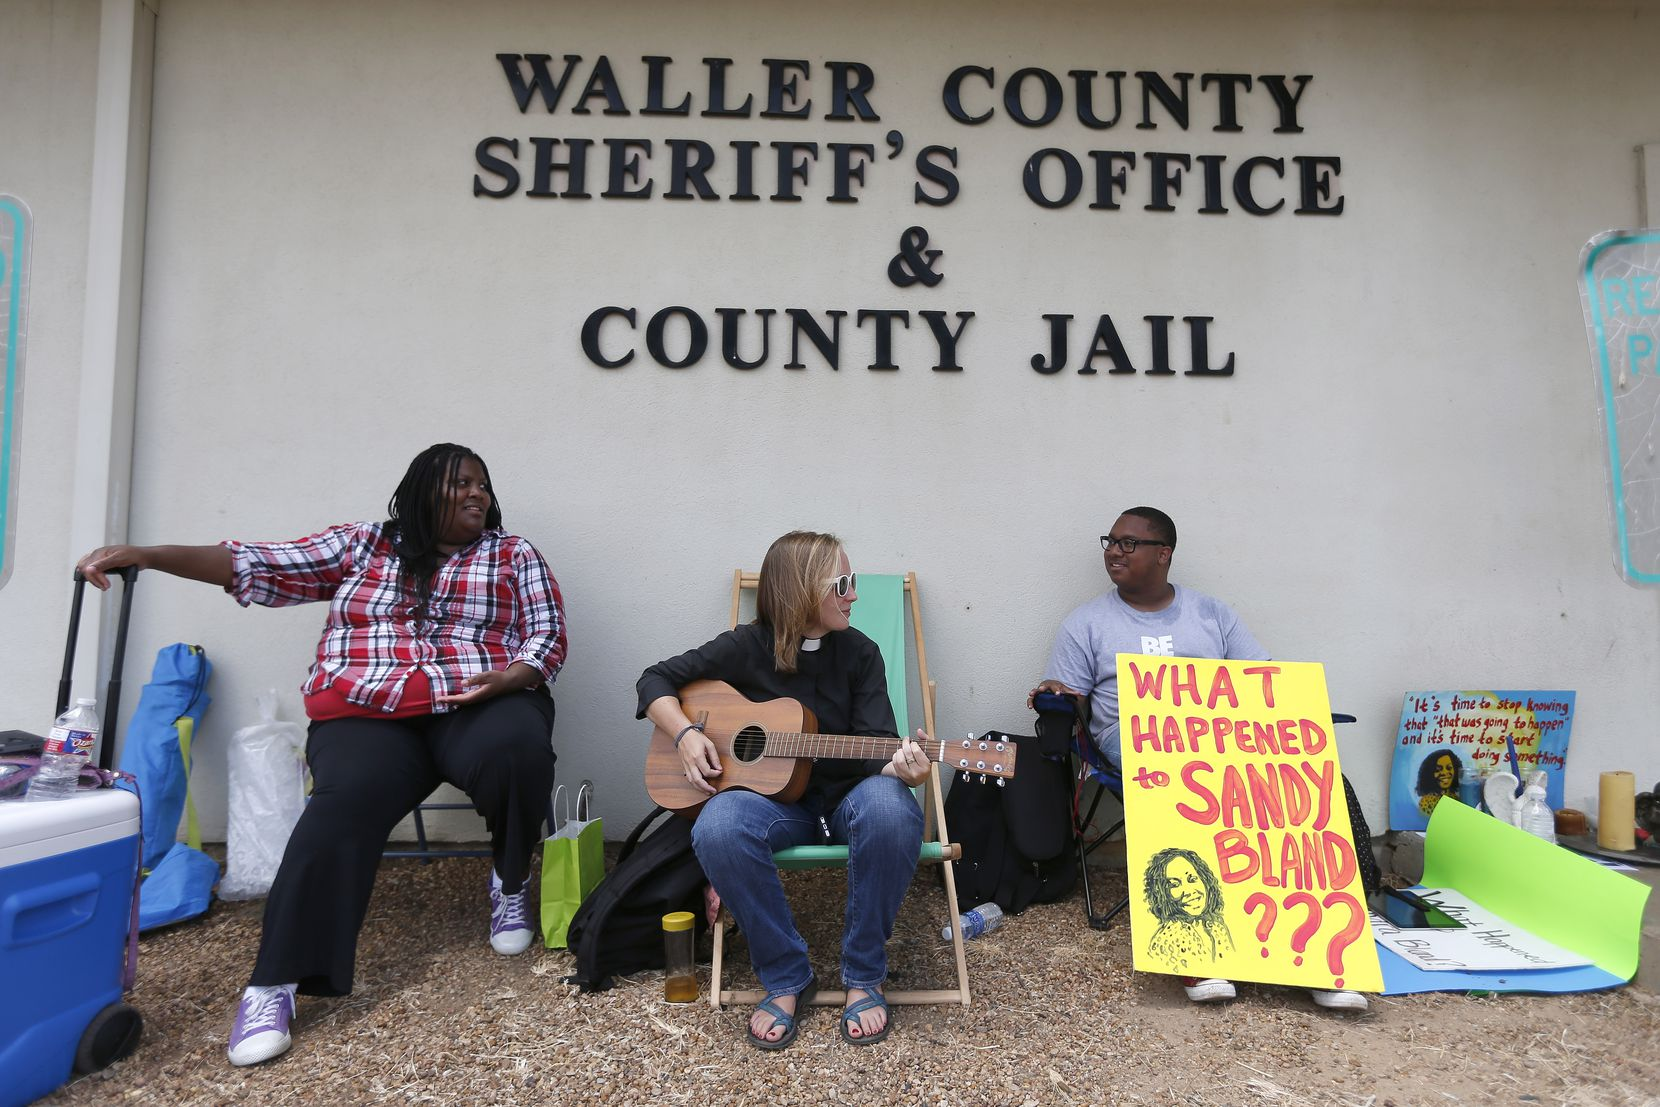 Carie Cauley, left, Rev. Hannah Bonner and Rhys Caraway protest, after the death of Sandra Bland, as they sit in front of the Waller County Sheriff's Office and county jail on Monday, July 20, 2015, in Hempstead, Texas. Authorities said Bland hanged herself in the jail three days after being pulled over by police for a traffic violation and then arrested for allegedly kicking an officer during the stop. Bland's family is ordering an independent autopsy, lawyers said. (Karen Warren/Houston Chronicle via AP) MANDATORY CREDIT